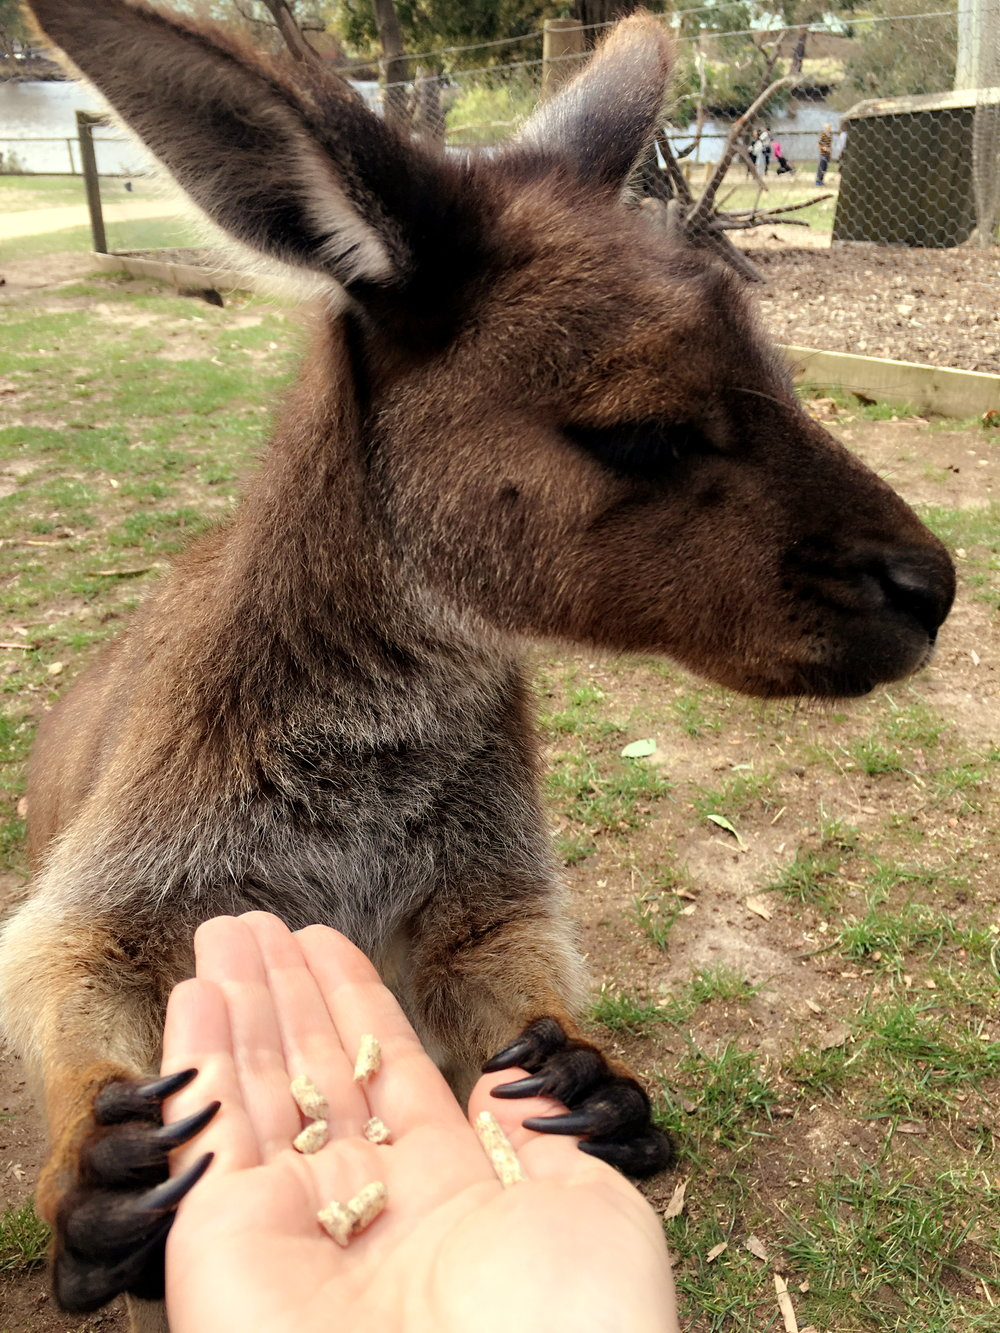 """I wanna hold your ha-aa-aand. I wanna hold your hand."" photo by Olya Kiriukhina at   Ballarat Wildlife Park"